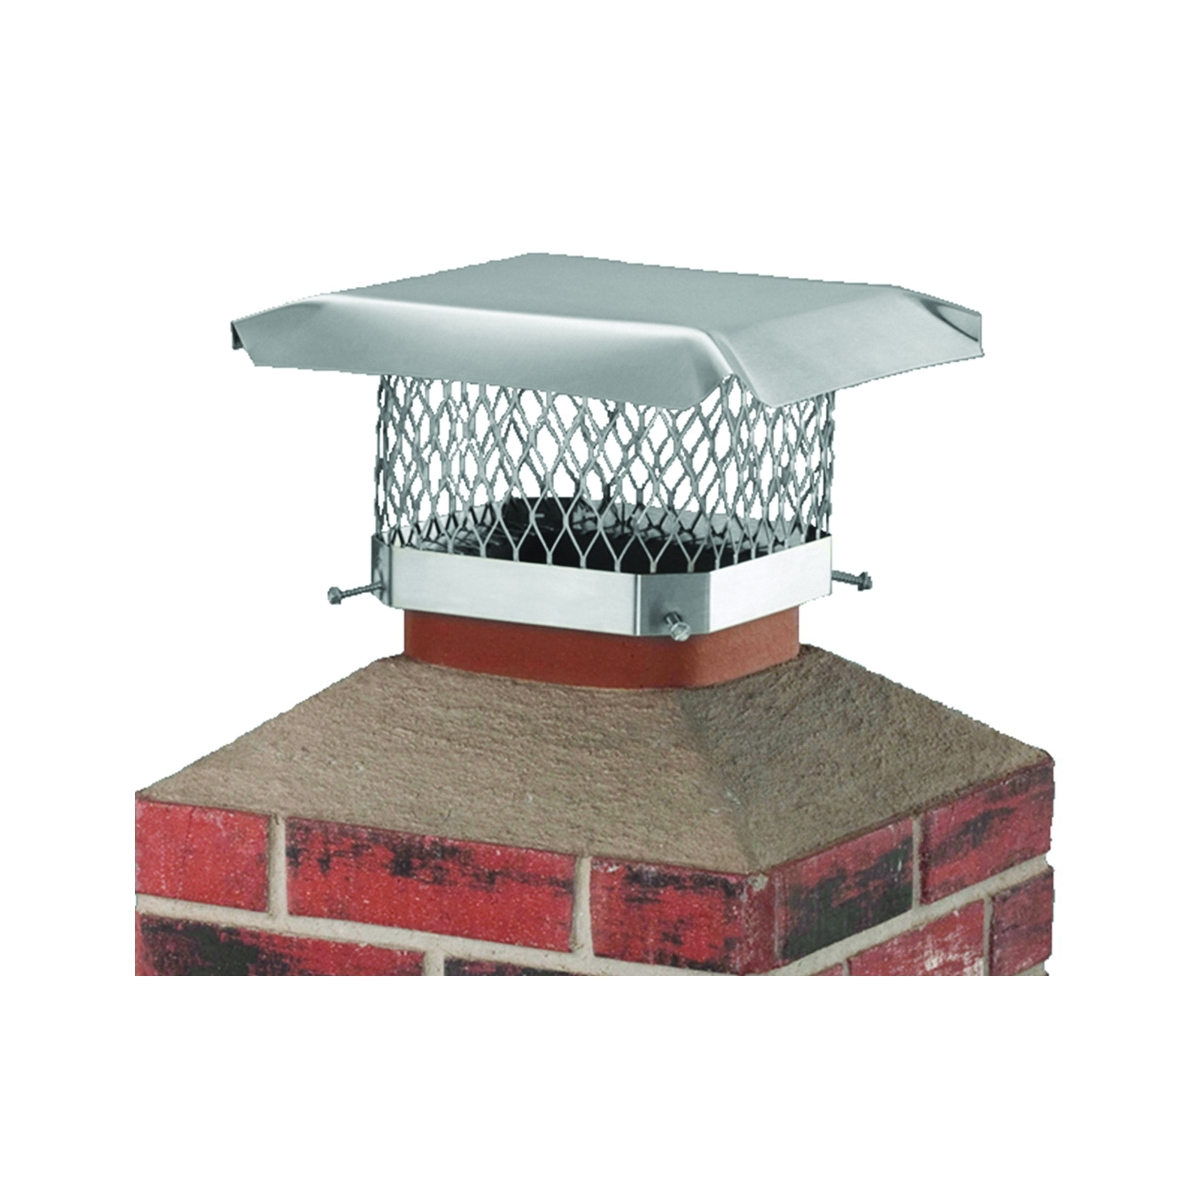 Picture of SHELTER SCSS913 Chimney Cap, Stainless Steel, Fits Duct Size: 7-1/2 x 11-1/2 to 9-1/2 x 13-1/2 in